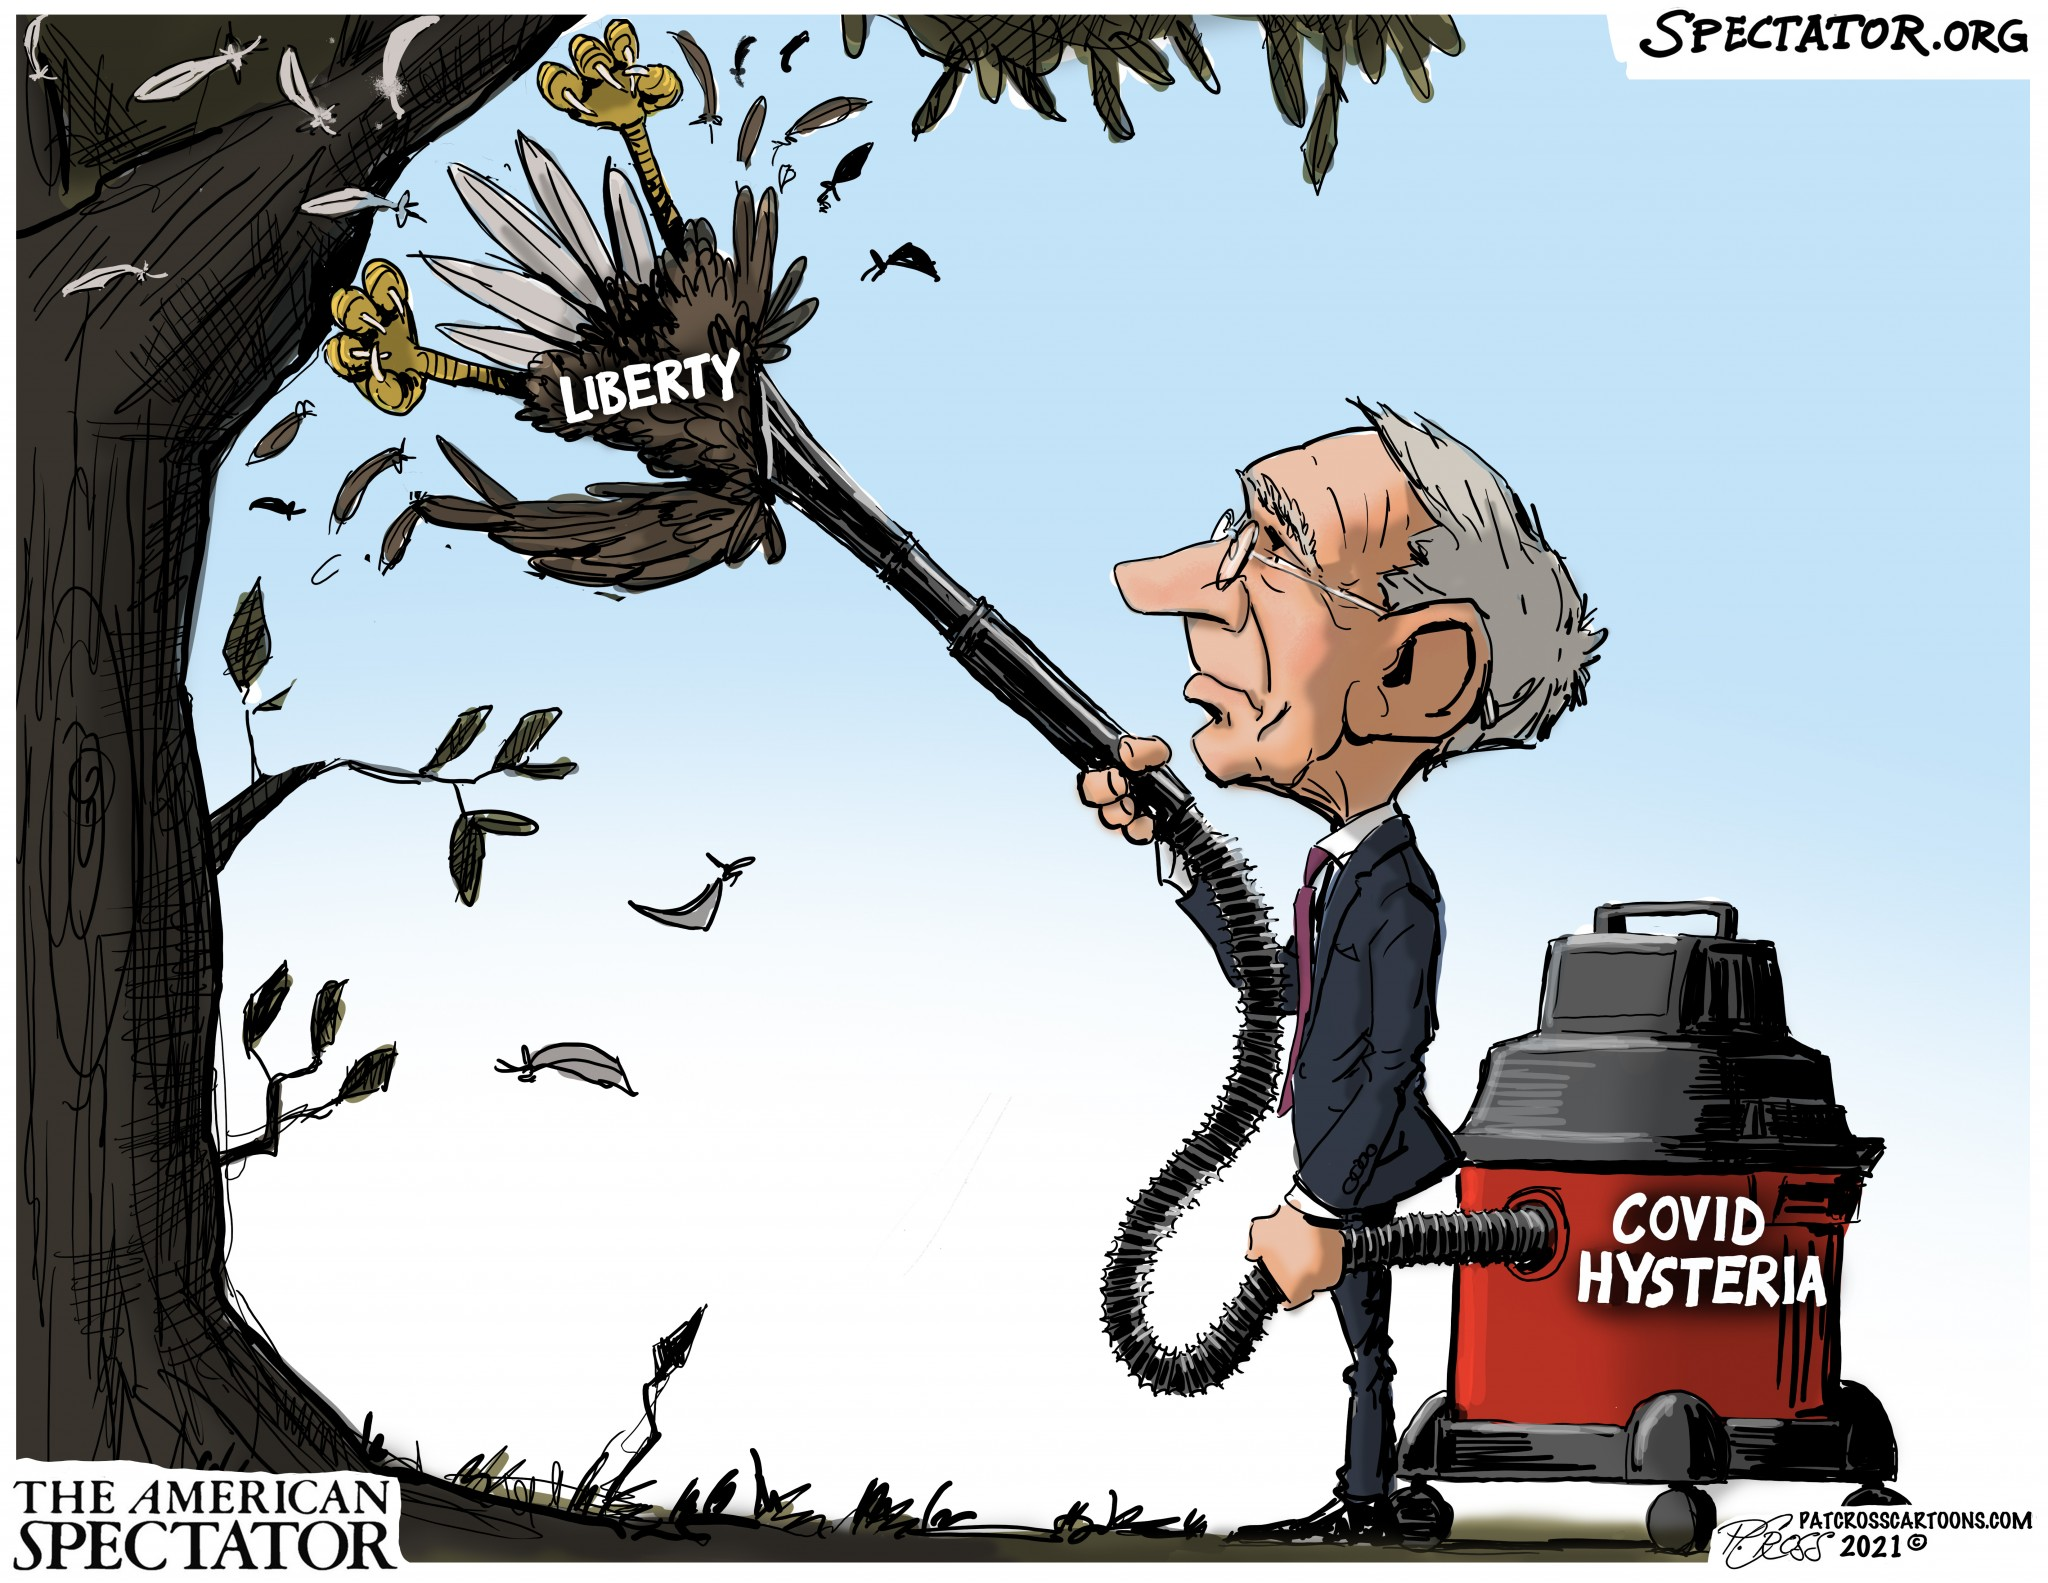 """""""The COVID Hysteria Vacuum,"""" editorial cartoon by Patrick Cross for The American Spectator, spectator.org, July 26, 2021."""